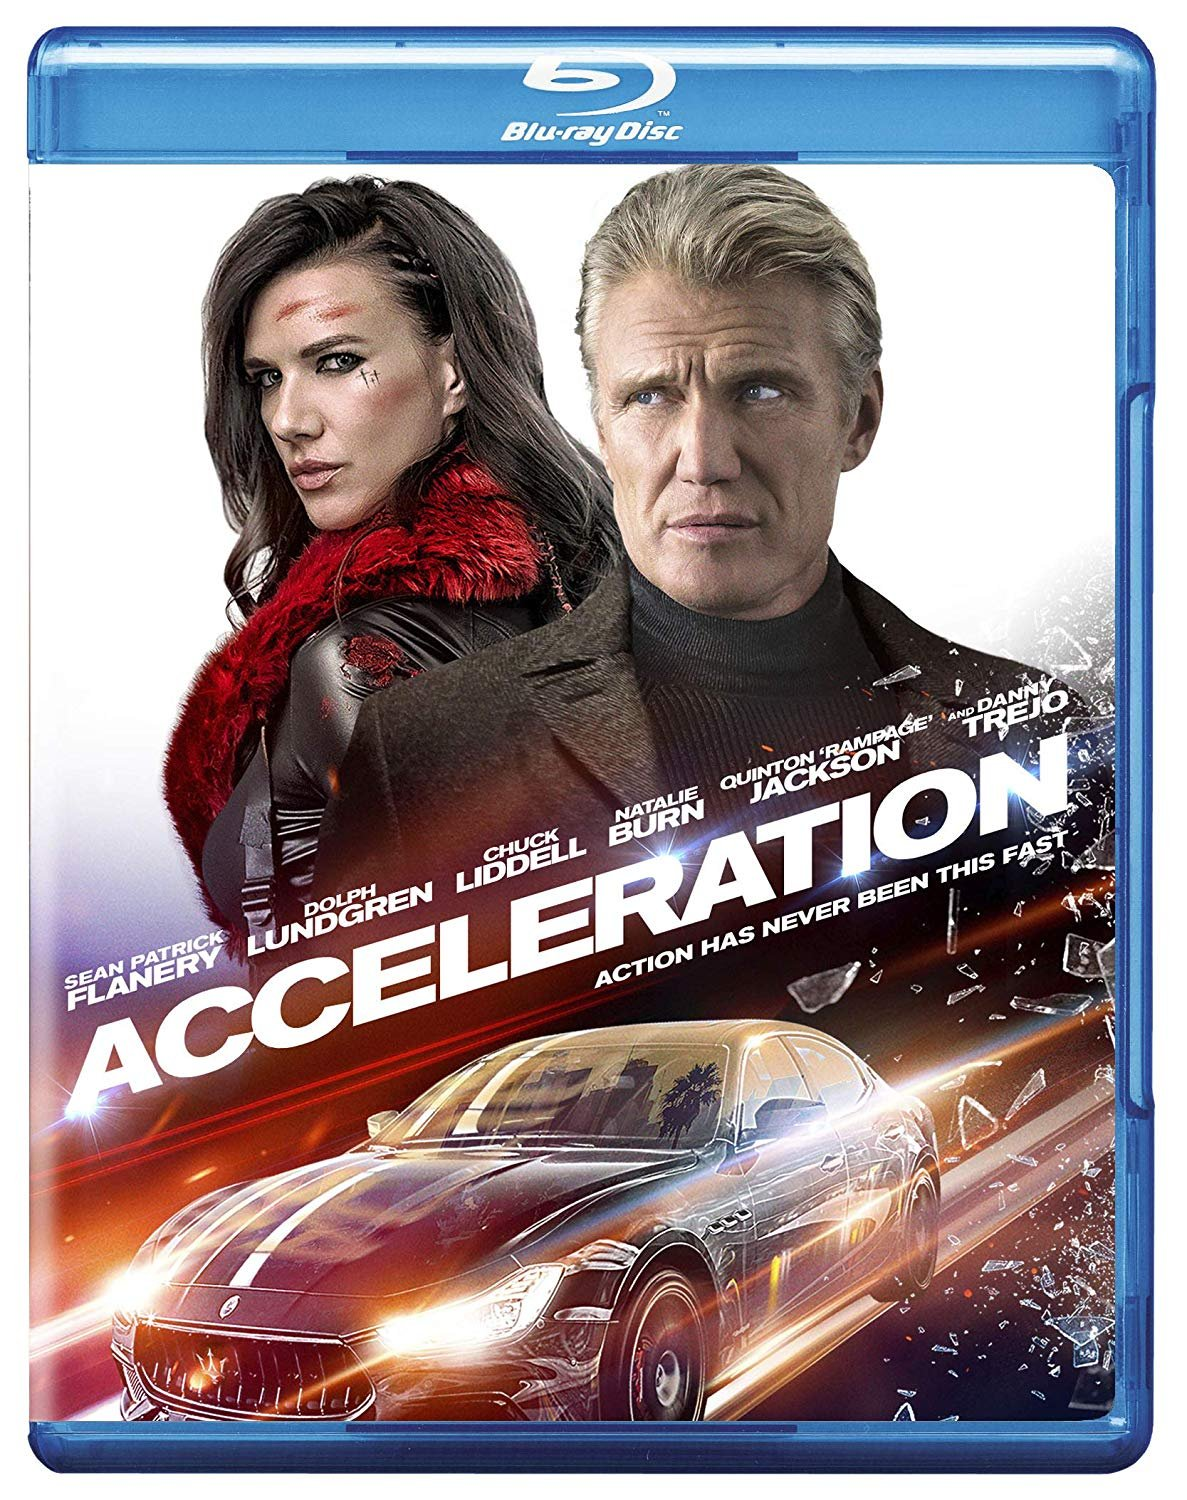 Acceleration (2019) poster image